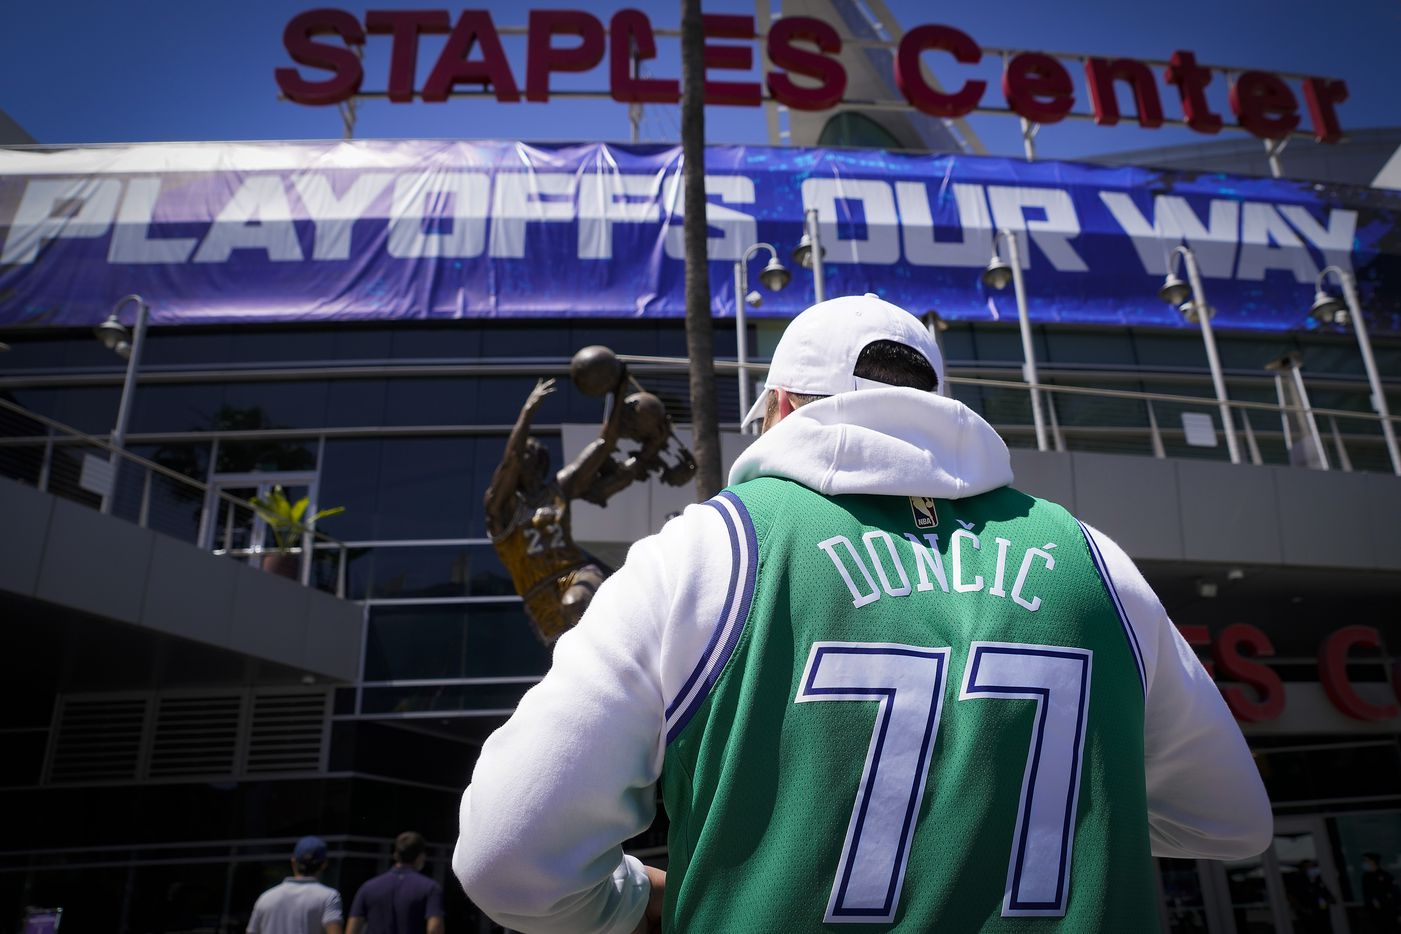 Dallas Mavericks fans head to the arena before Game 7 of an NBA playoff basketball series against the LA Clippers at the Staples Center on Sunday, June 6, 2021, in Los Angeles.